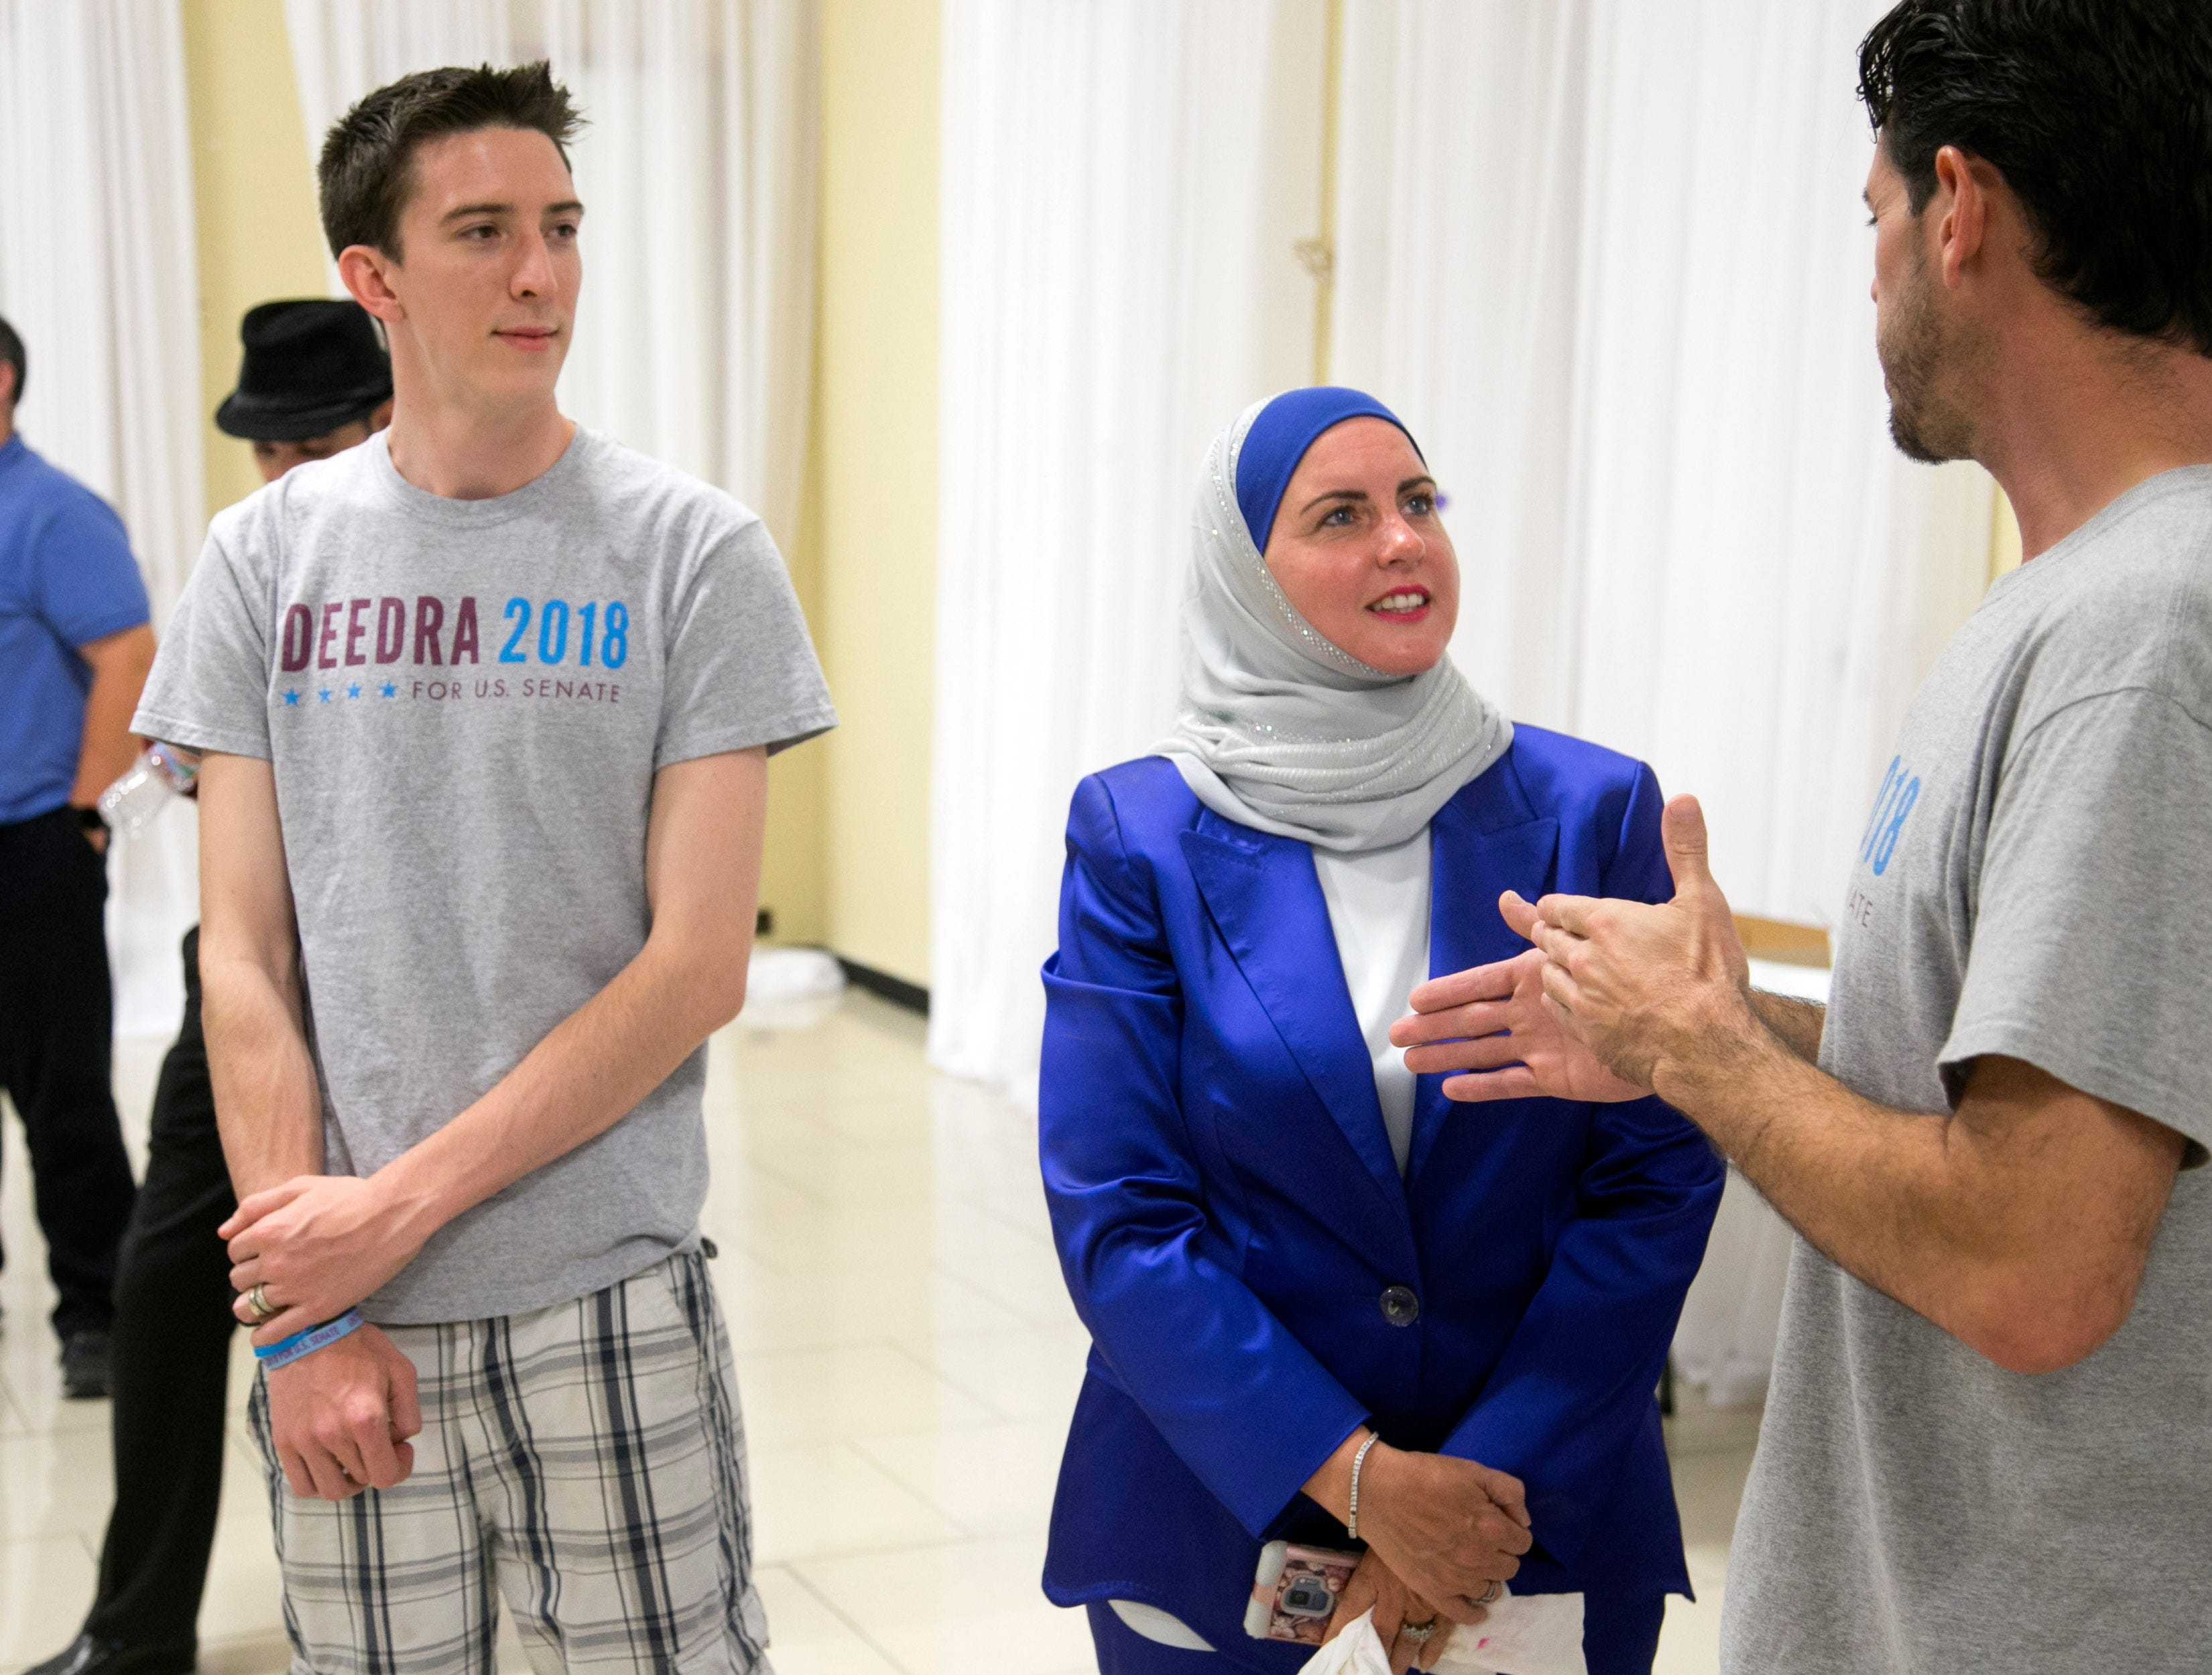 Deedra Abboud, who is vying for the Democratic nomination for the U.S. Senate seat, talks with John O'Neal (right) and Dane Amling, both volunteers from her campaign, at a watch party for the Arizona primary at Pearls Banquet Hall in Mesa on Tuesday evening, August 28, 2018.